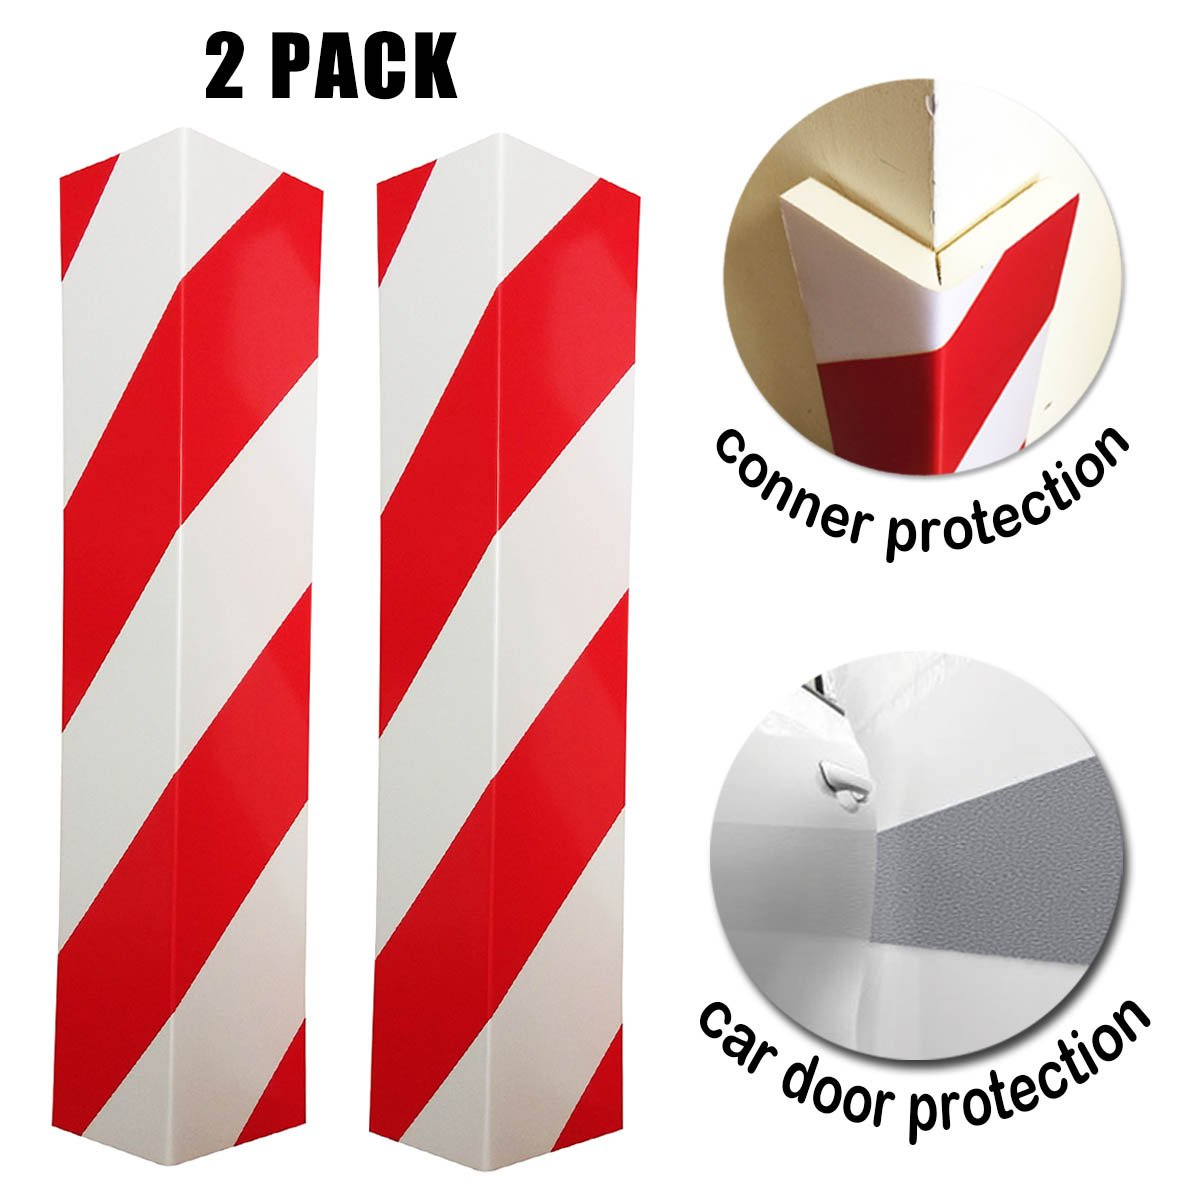 Car Door Bumper Guard Garage Wall Corner Anti Scratch 90 degree Right Angle Parking Protector - 2 Pack miss u design